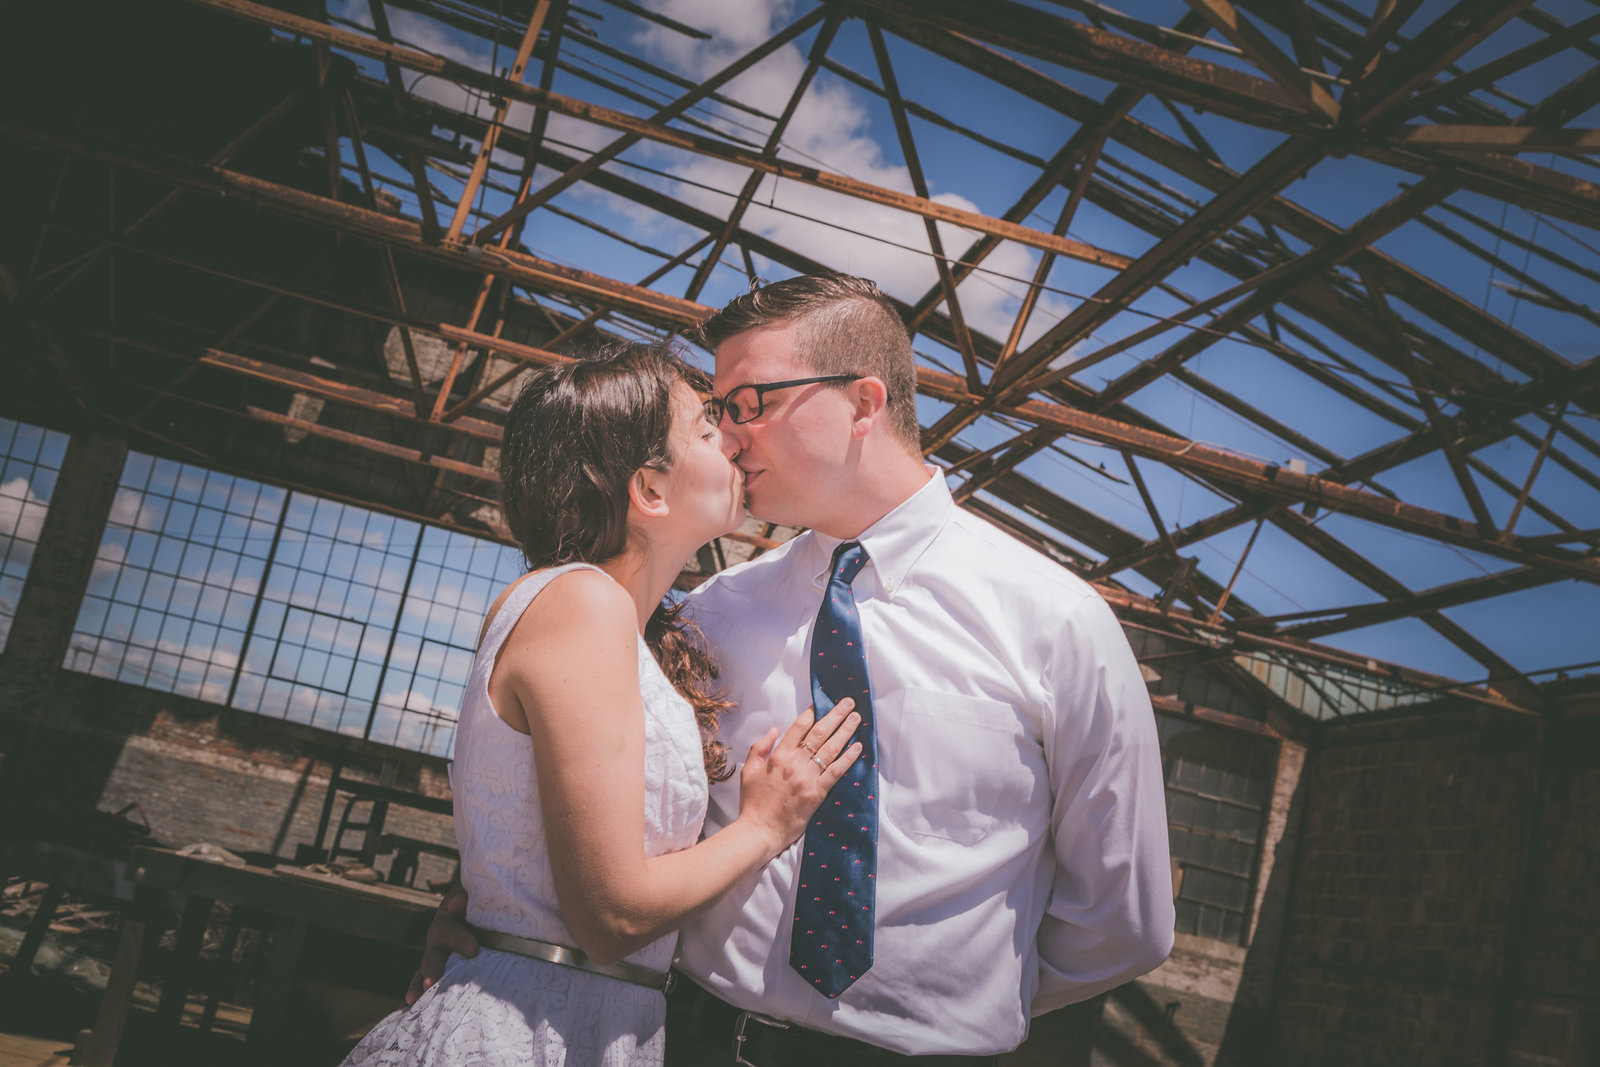 Couple kisses under airplane hanger in Connecticut.